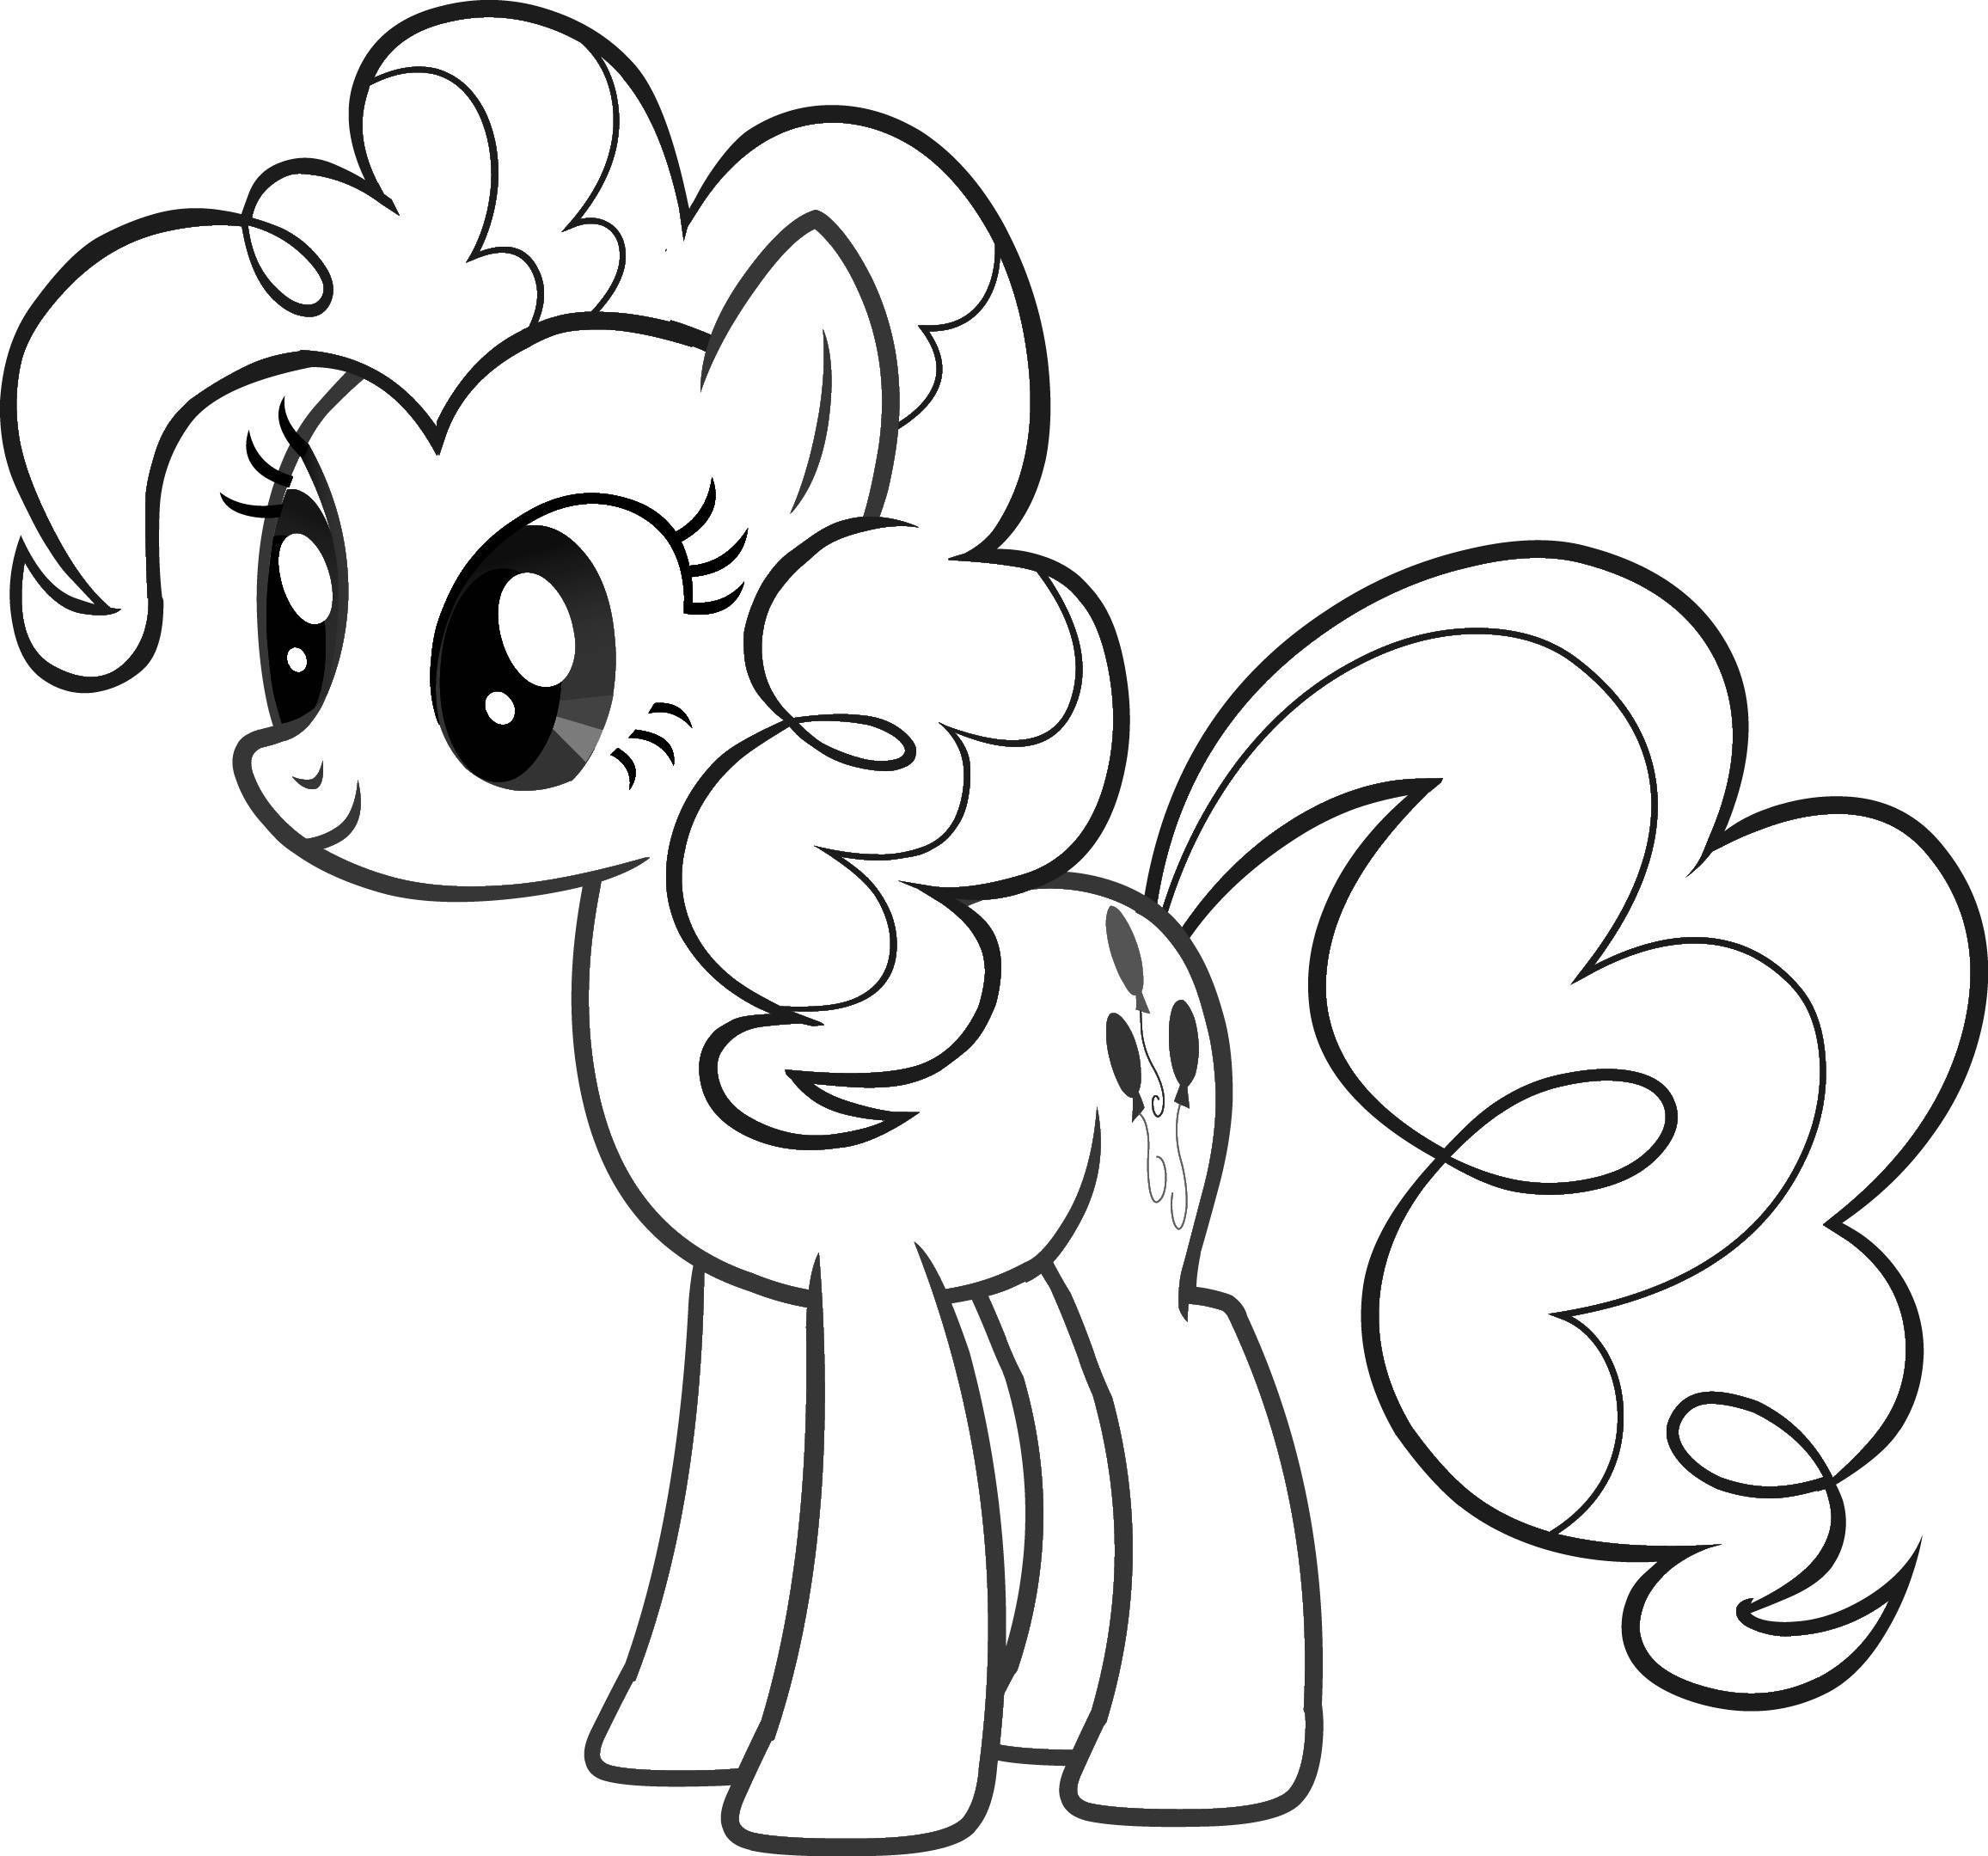 my little pony print out coloring pages free printable my little pony coloring pages for kids pony out pages coloring little print my